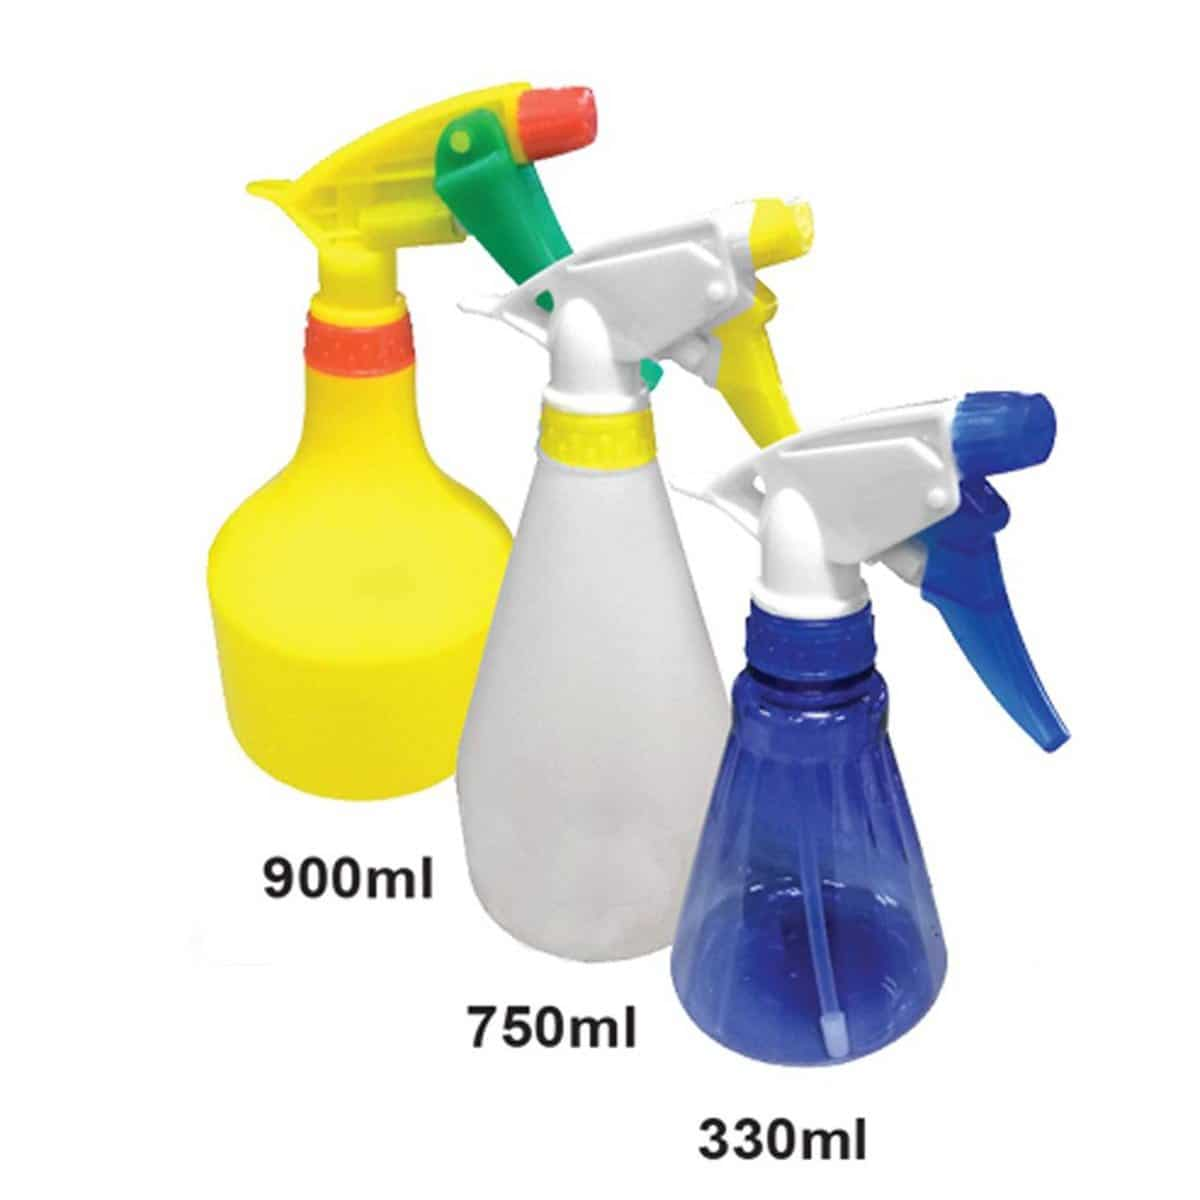 Aneka Pump Garden Spray Mist Hand Trigger Water Sprayer 750ml ITS750